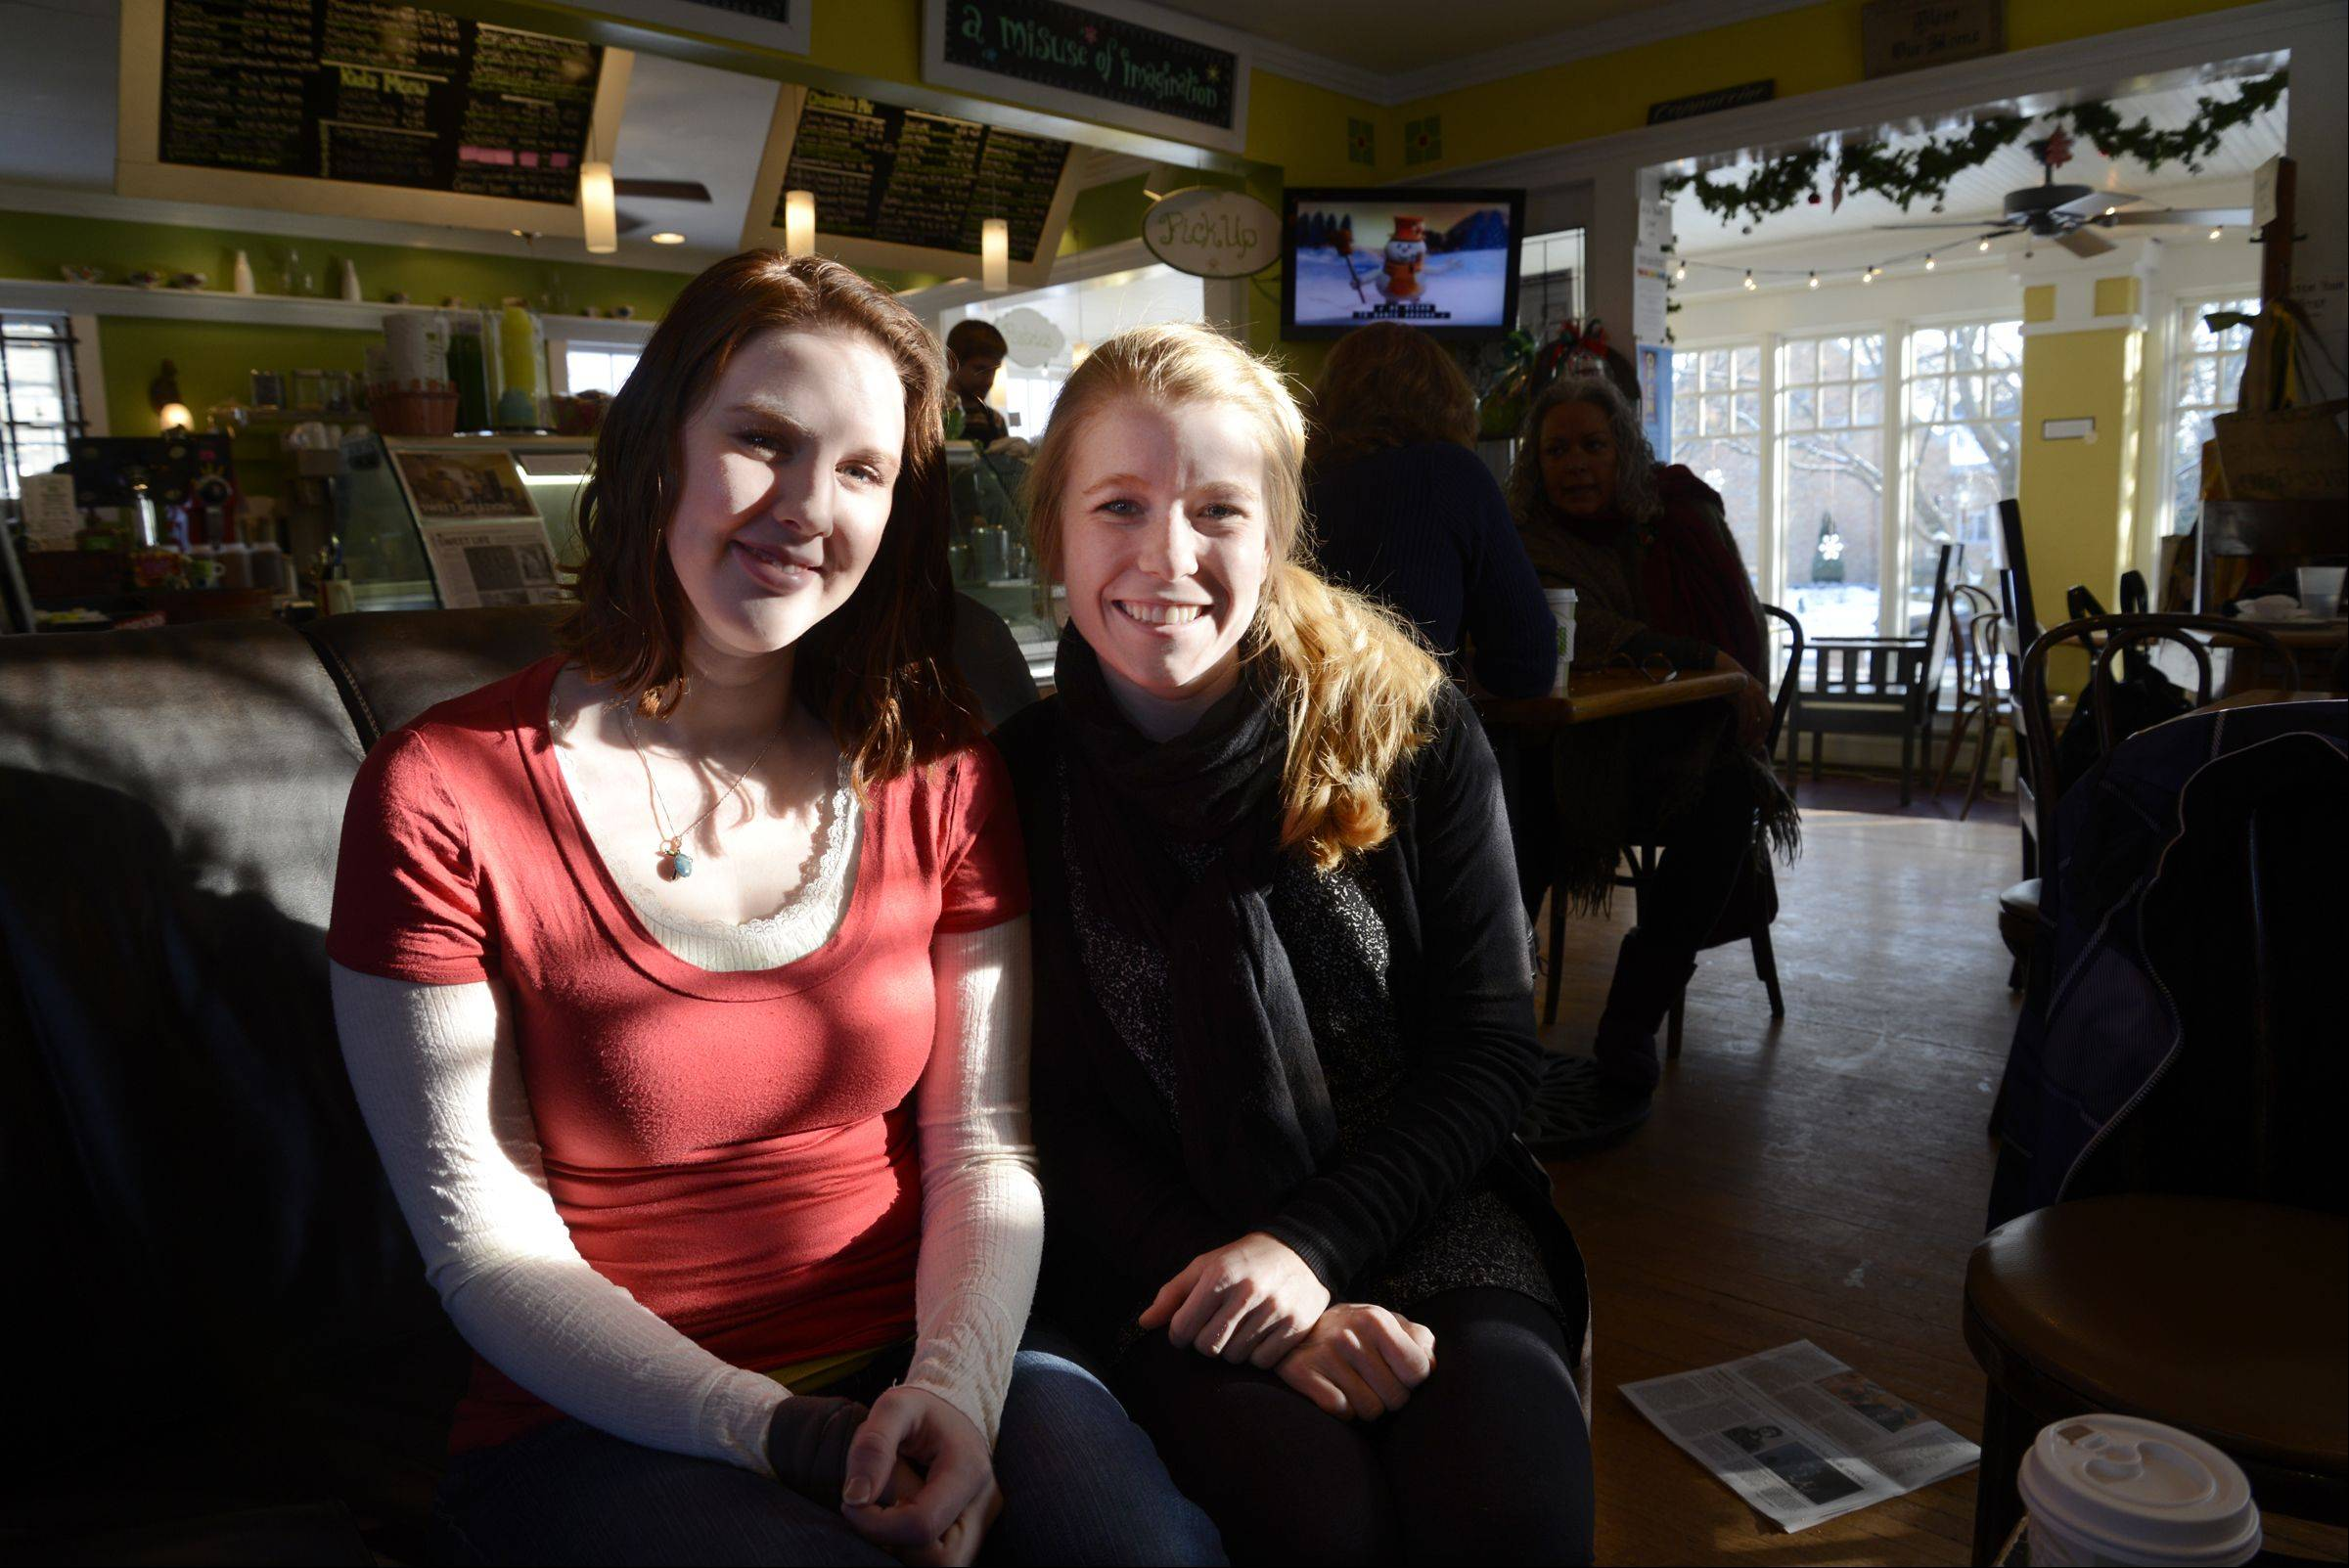 Rachel Duff, left, gave longtime friend Mandi Davis a kidney in November. It wasn't a direct donation, however, because Duff's kidney wasn't a match for Davis. Instead, they took part in a six-person transplant chain.